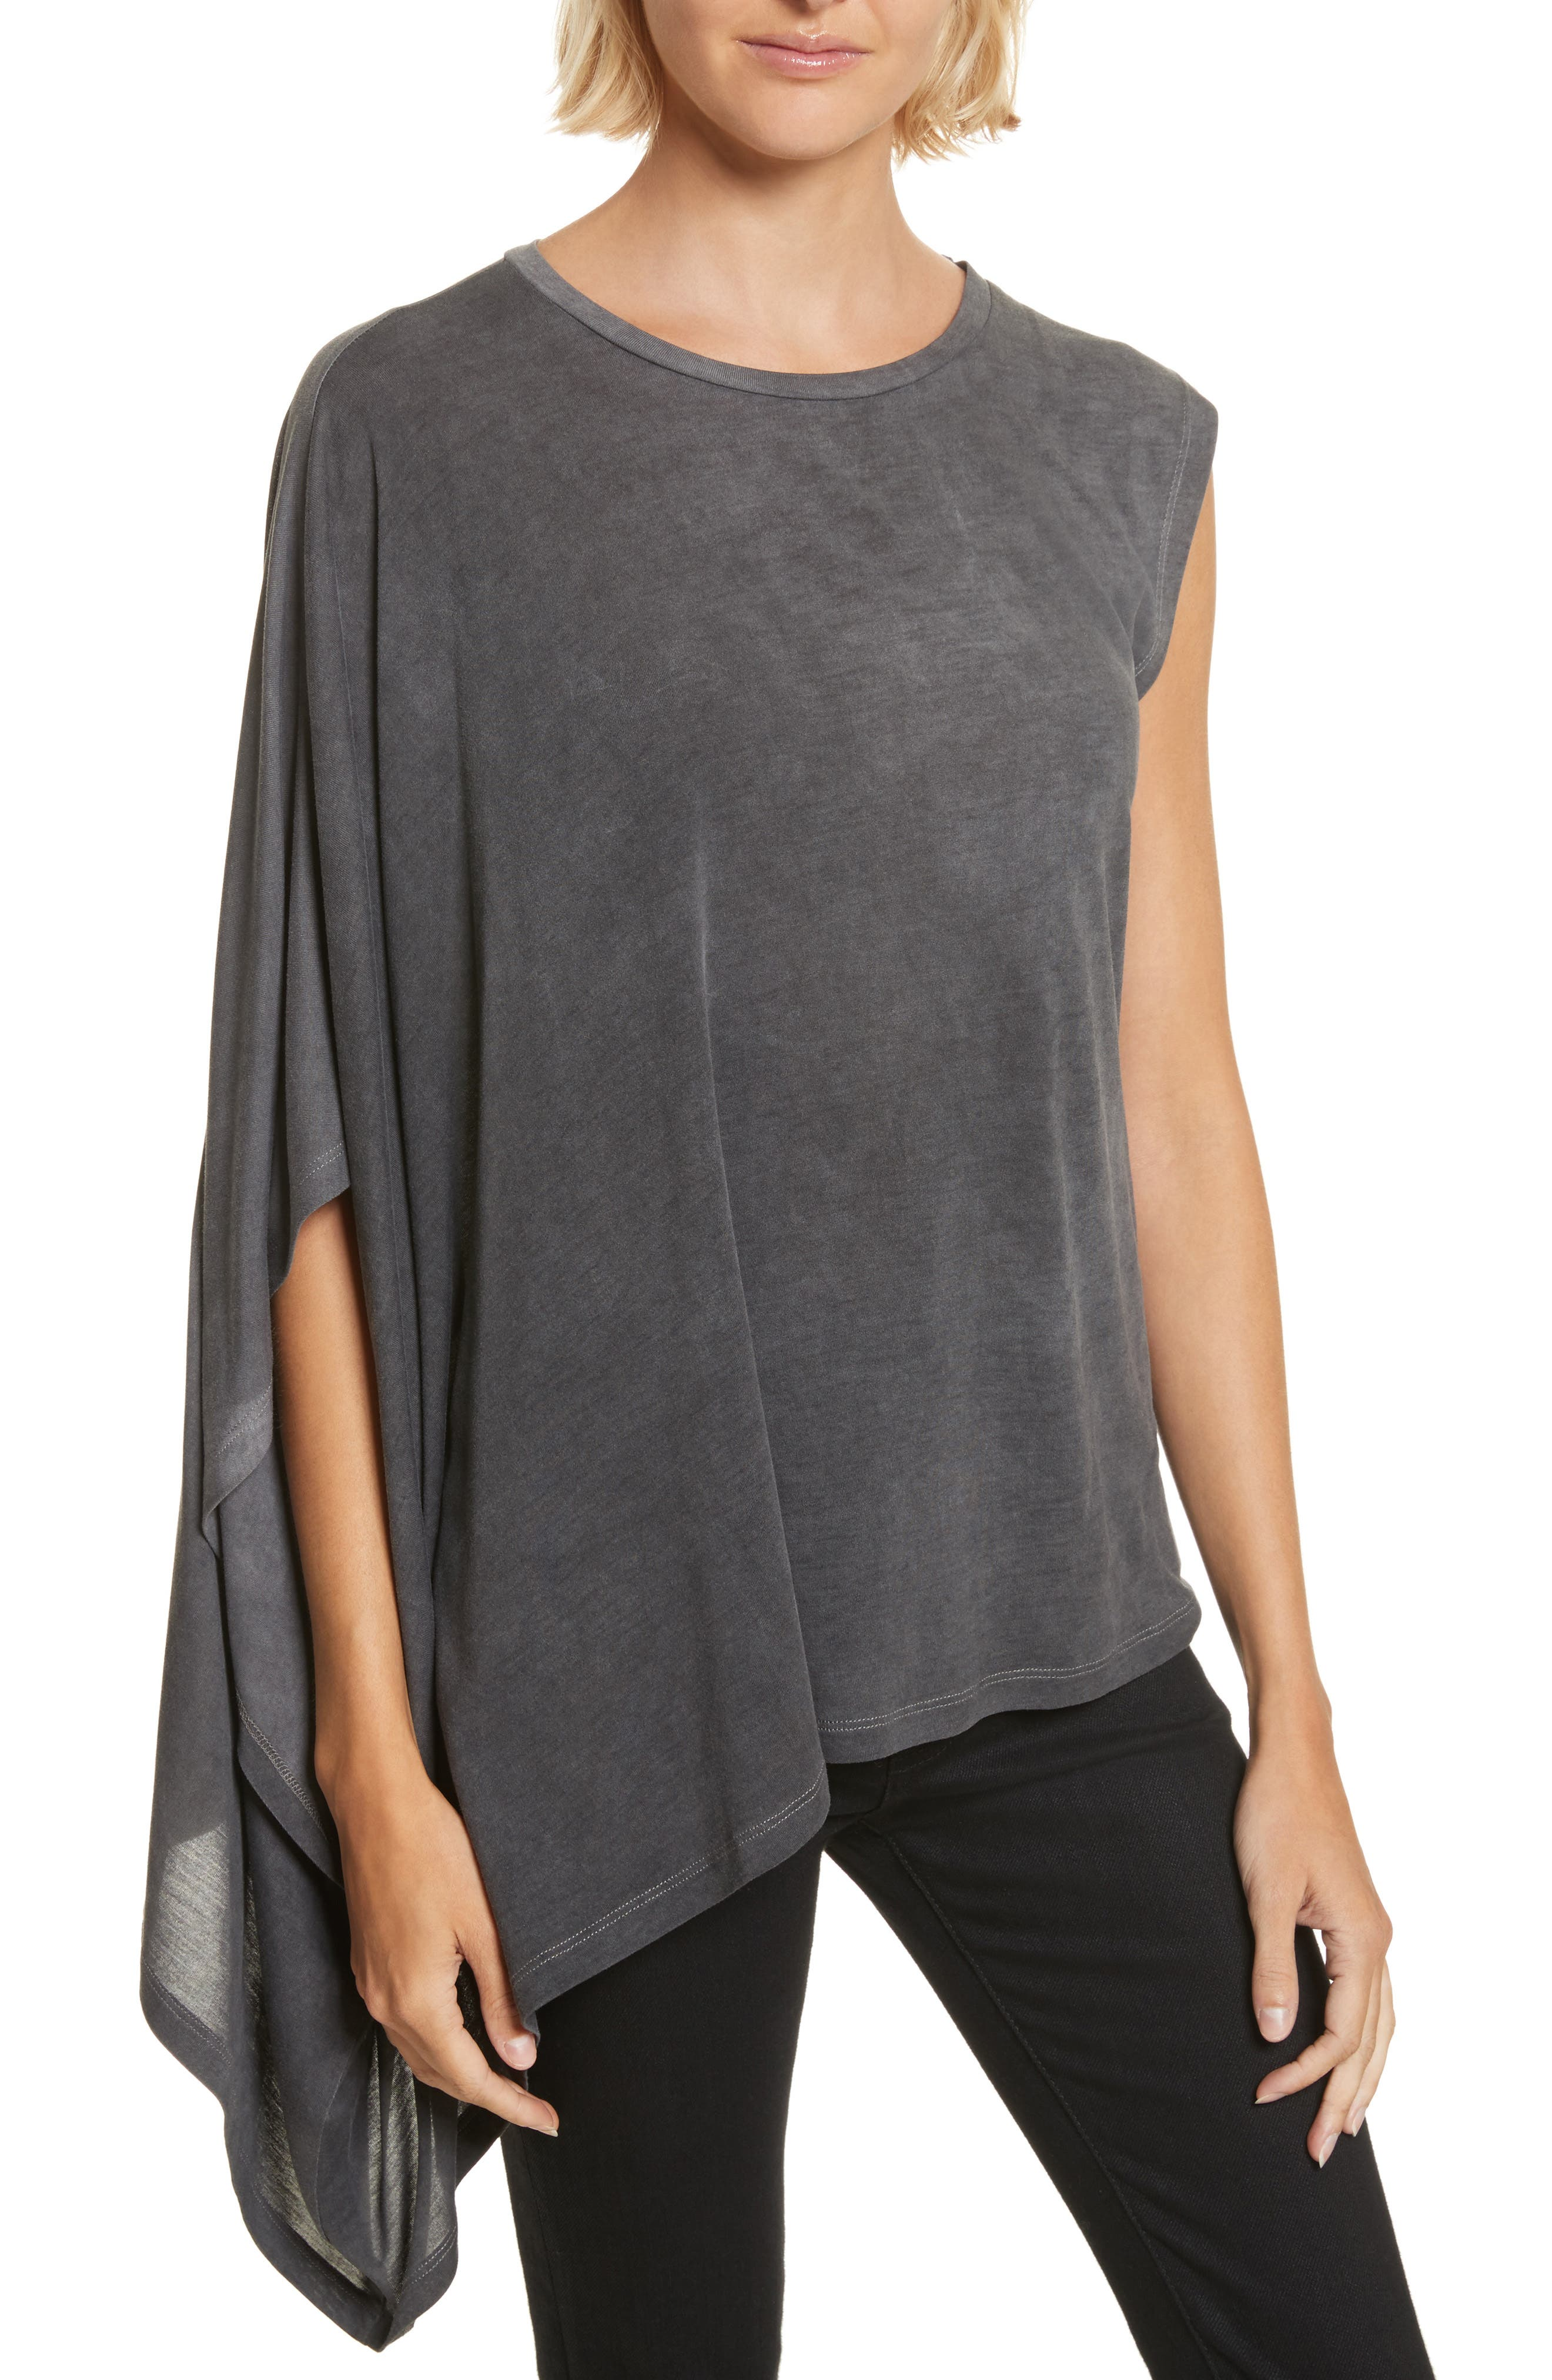 Eloaz Asymmetrical Draped Top,                             Main thumbnail 1, color,                             Charcoal